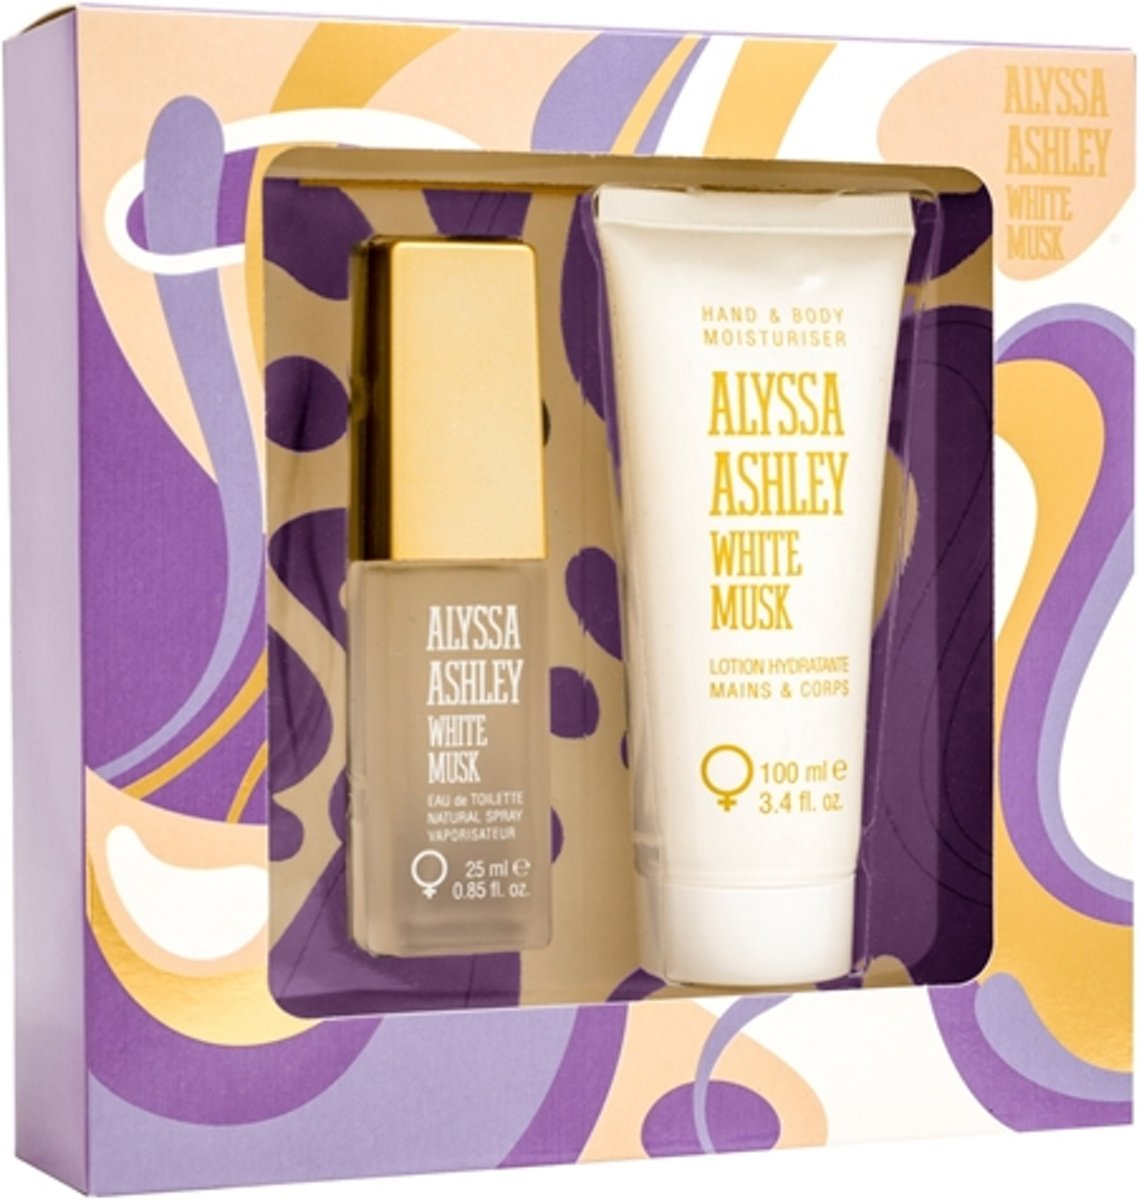 Alyssa Ashley White Musk Gift set 2 st.